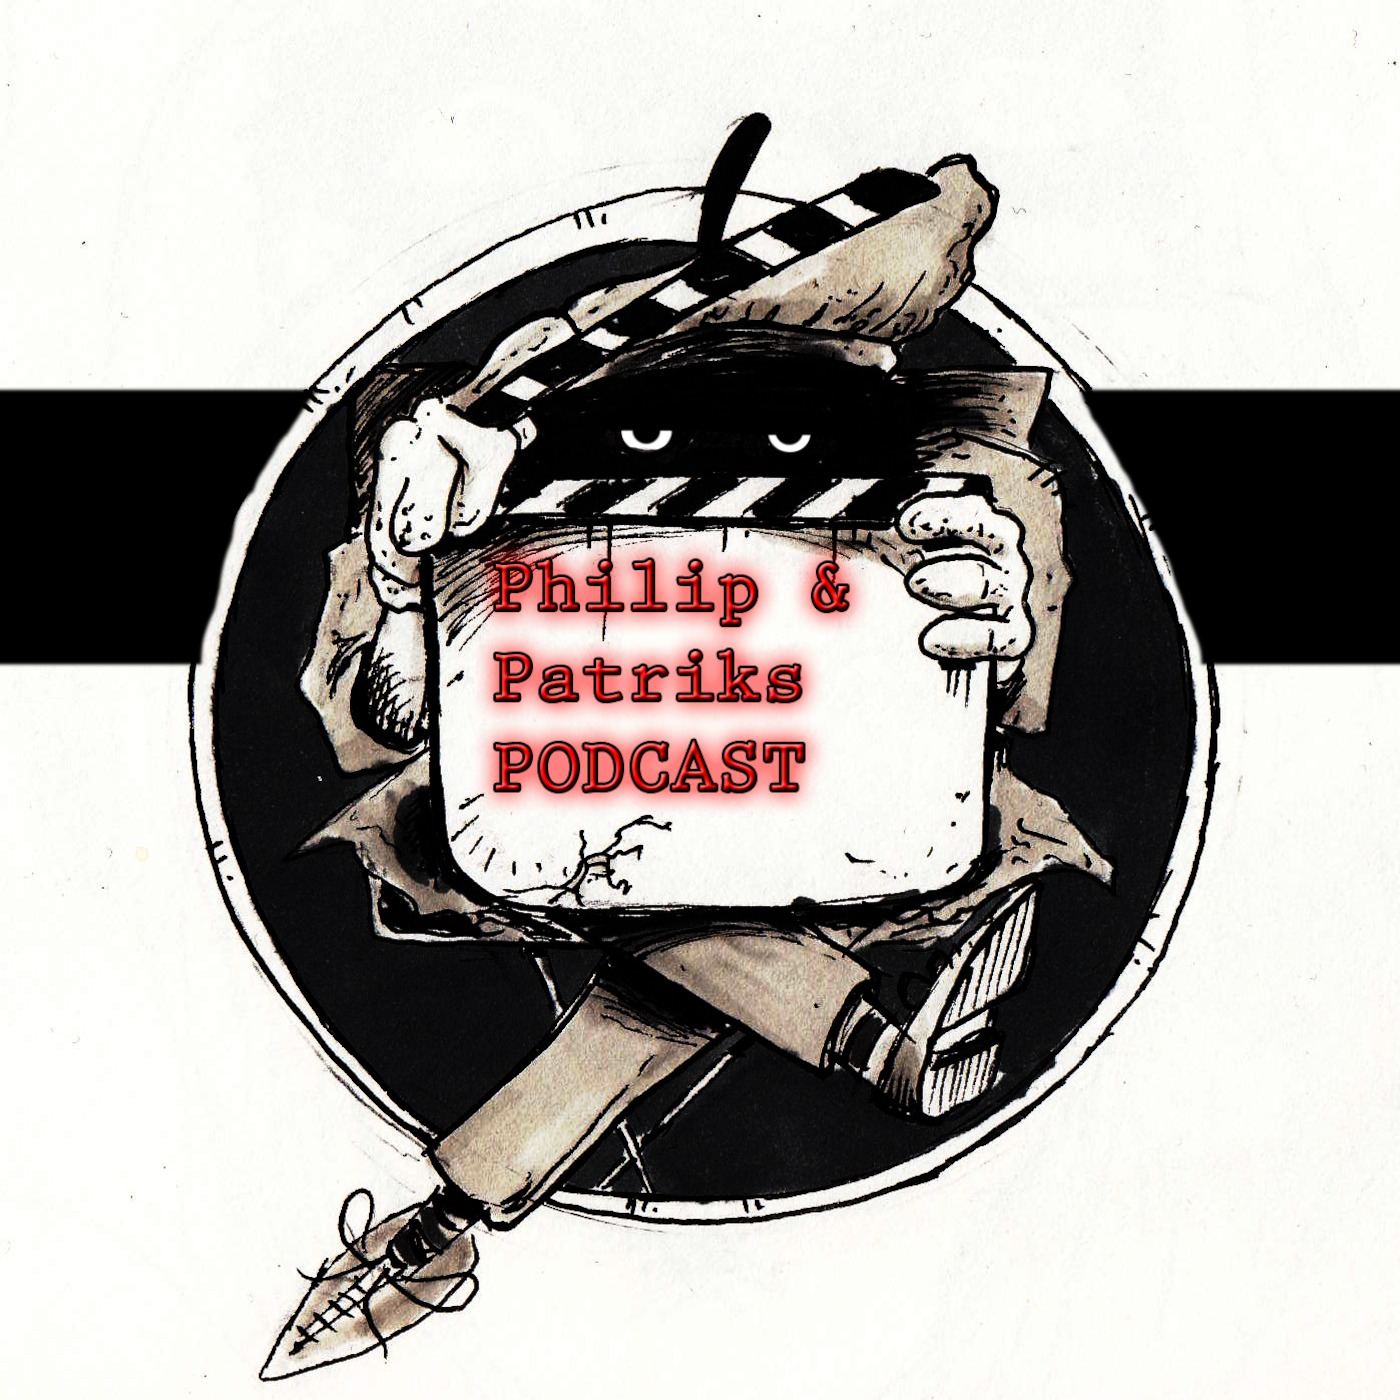 Philip och Patriks Podcast